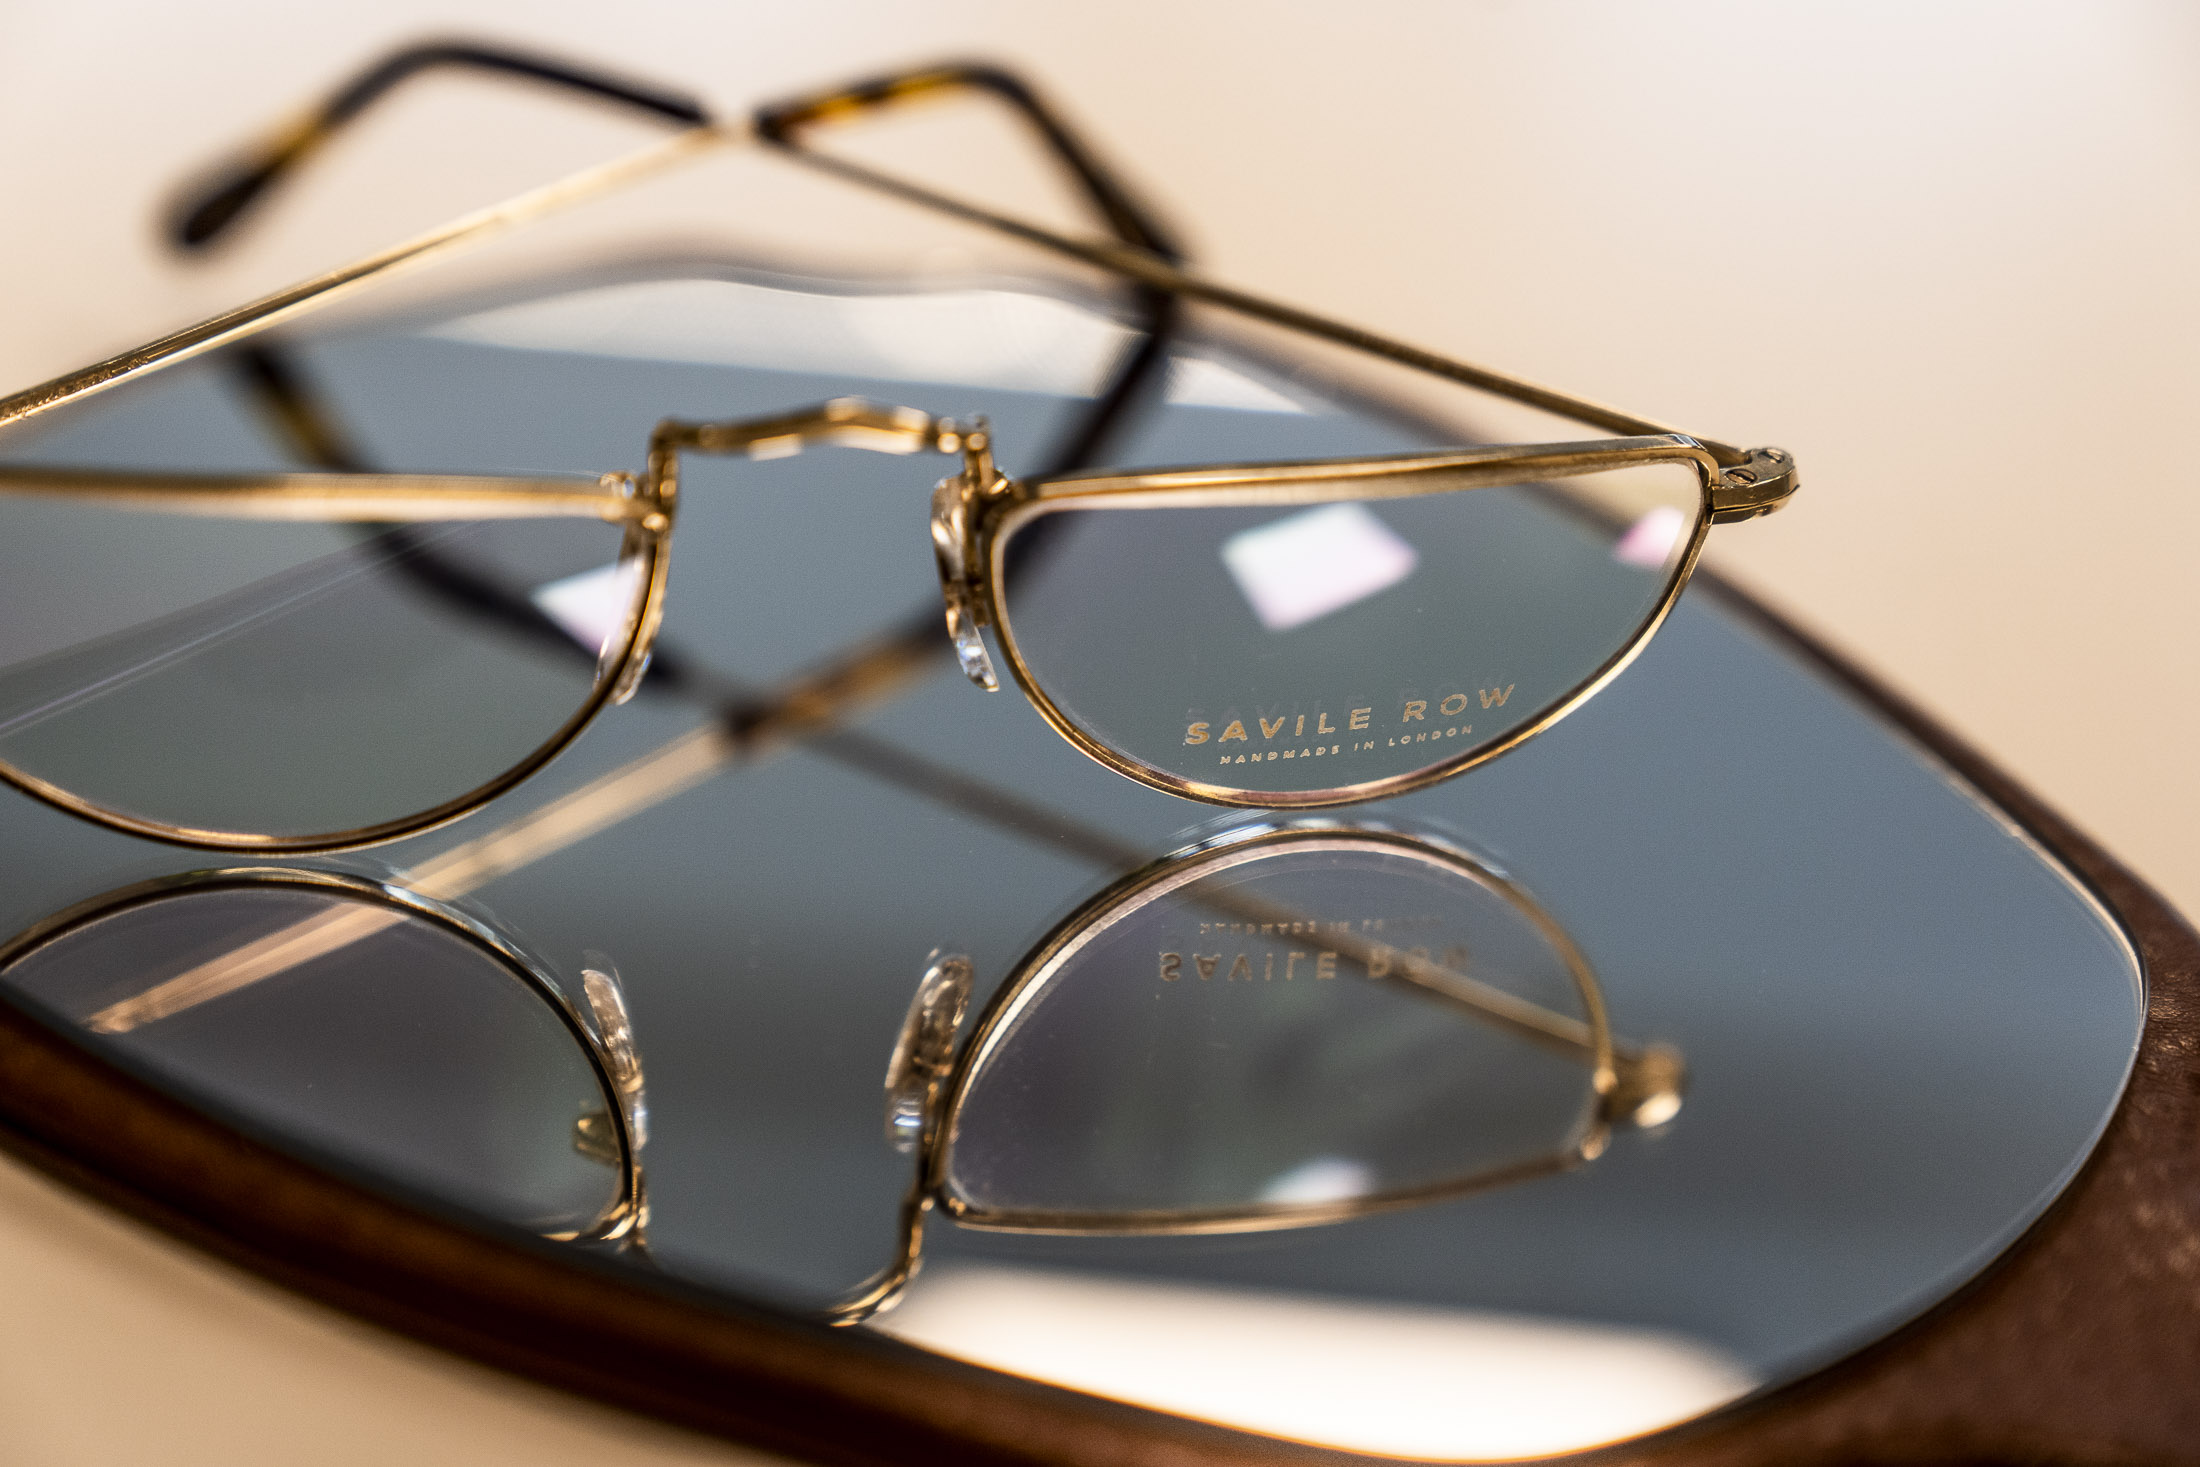 Commercial_photography_optometrist_glasses_on_mirror.jpg